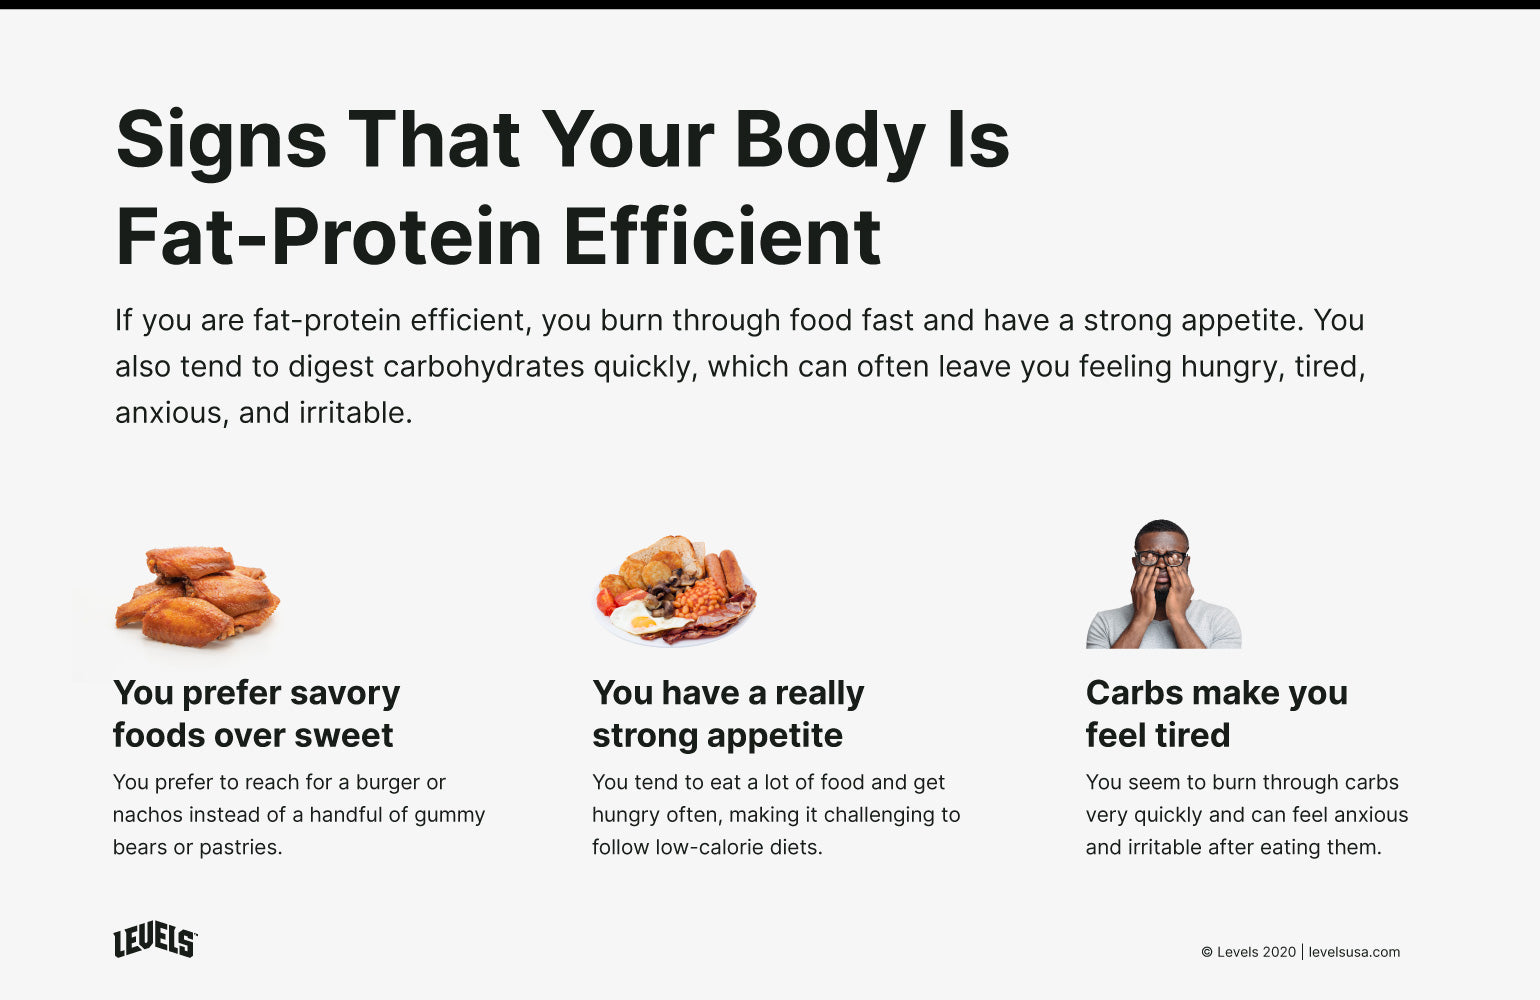 Signs You Have Fat-Protein Efficient Metabolism - Infographic